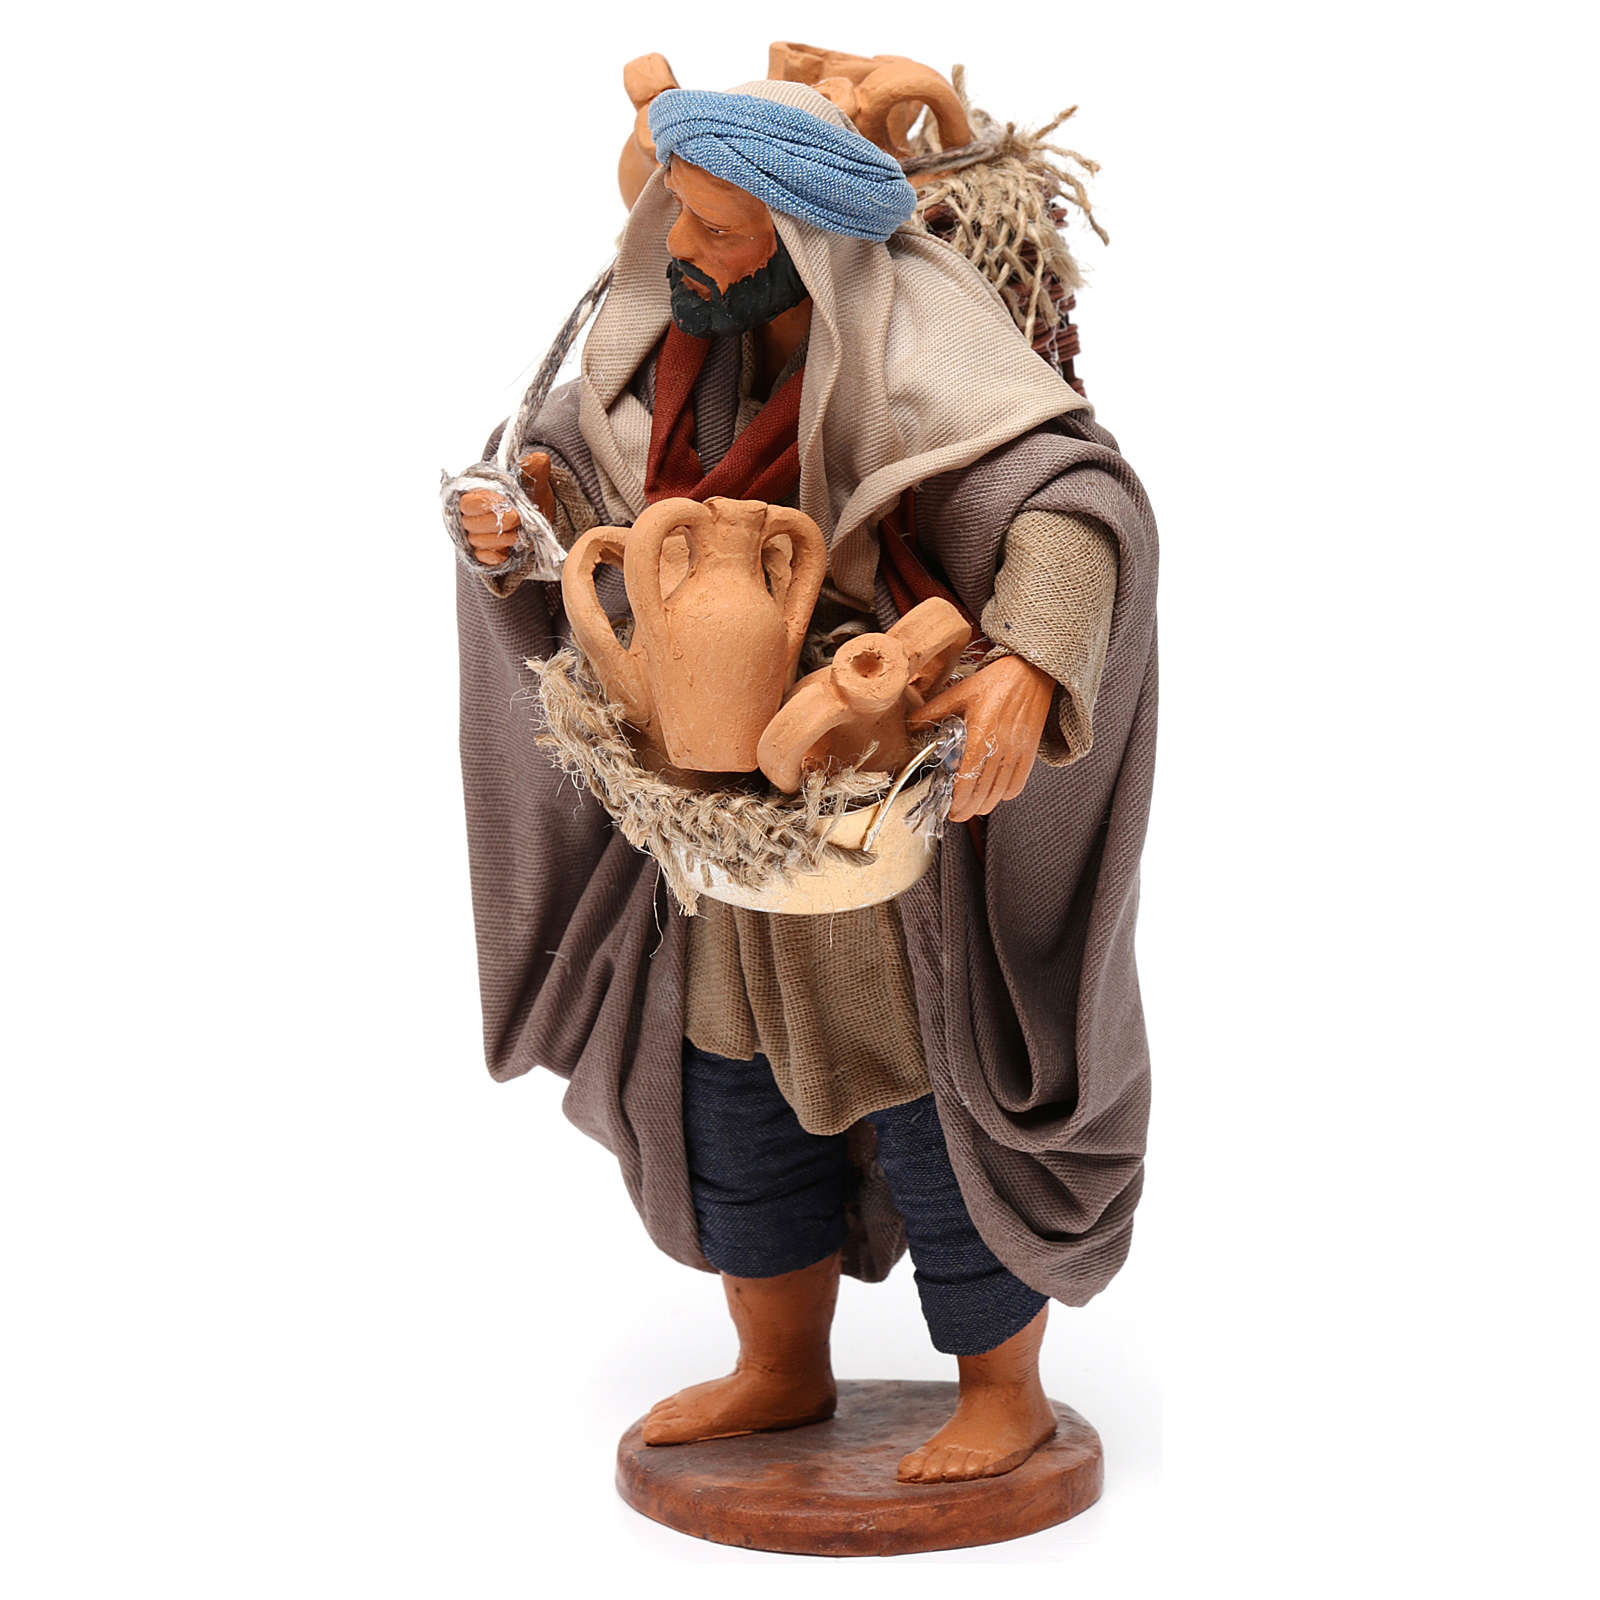 Man with amphoras Neapolitan nativity figurine 14 cm 4